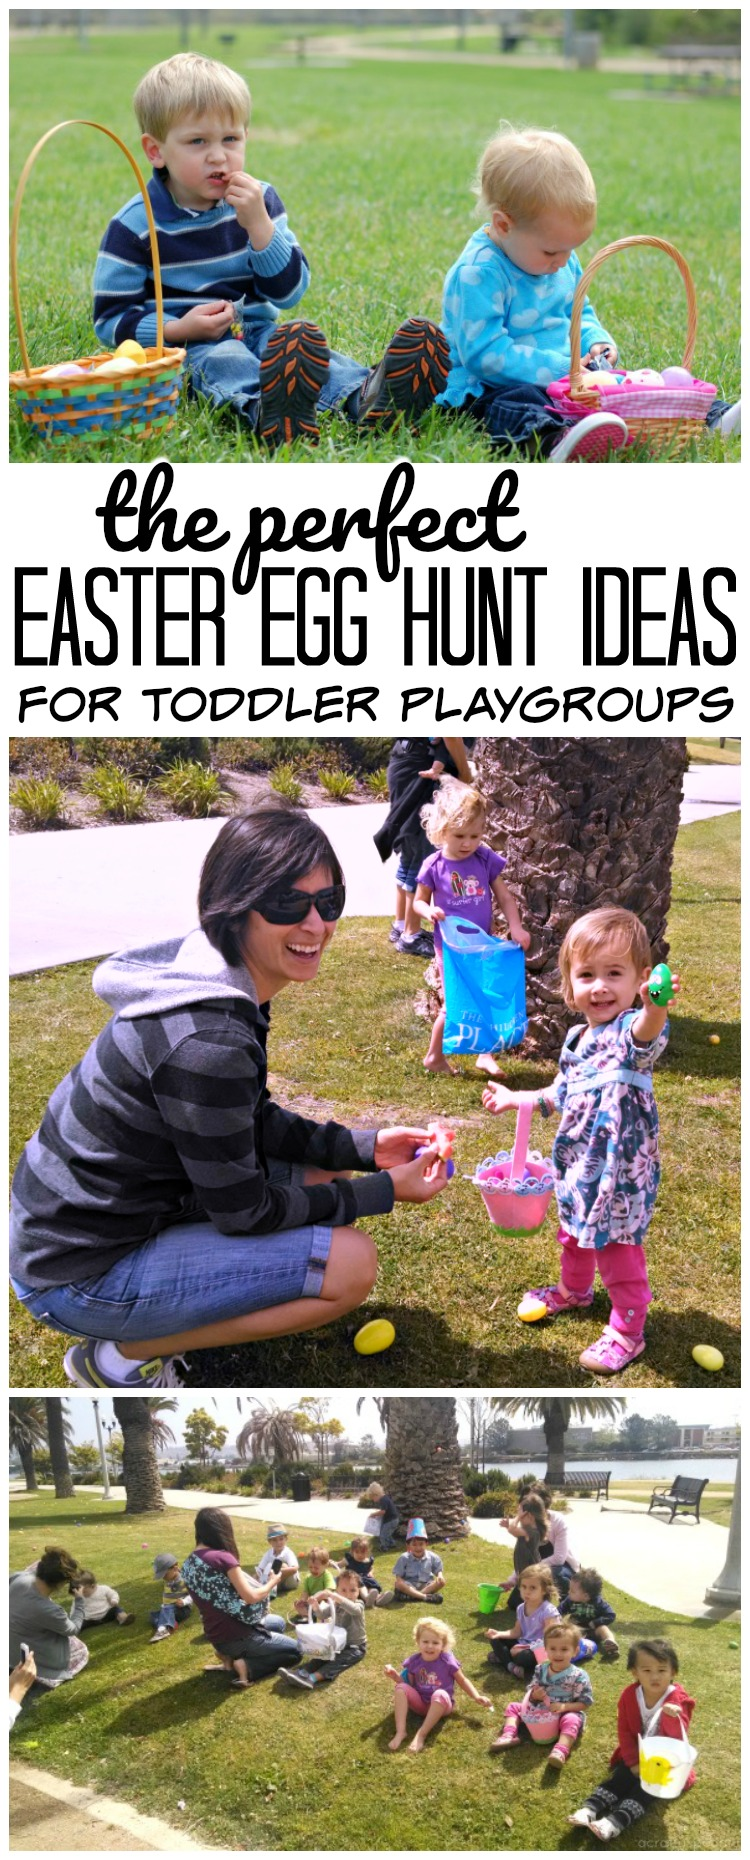 Check out these perfect Easter Egg Hunt Ideas for toddlers when you're planning an egg hunt for your playgroup.